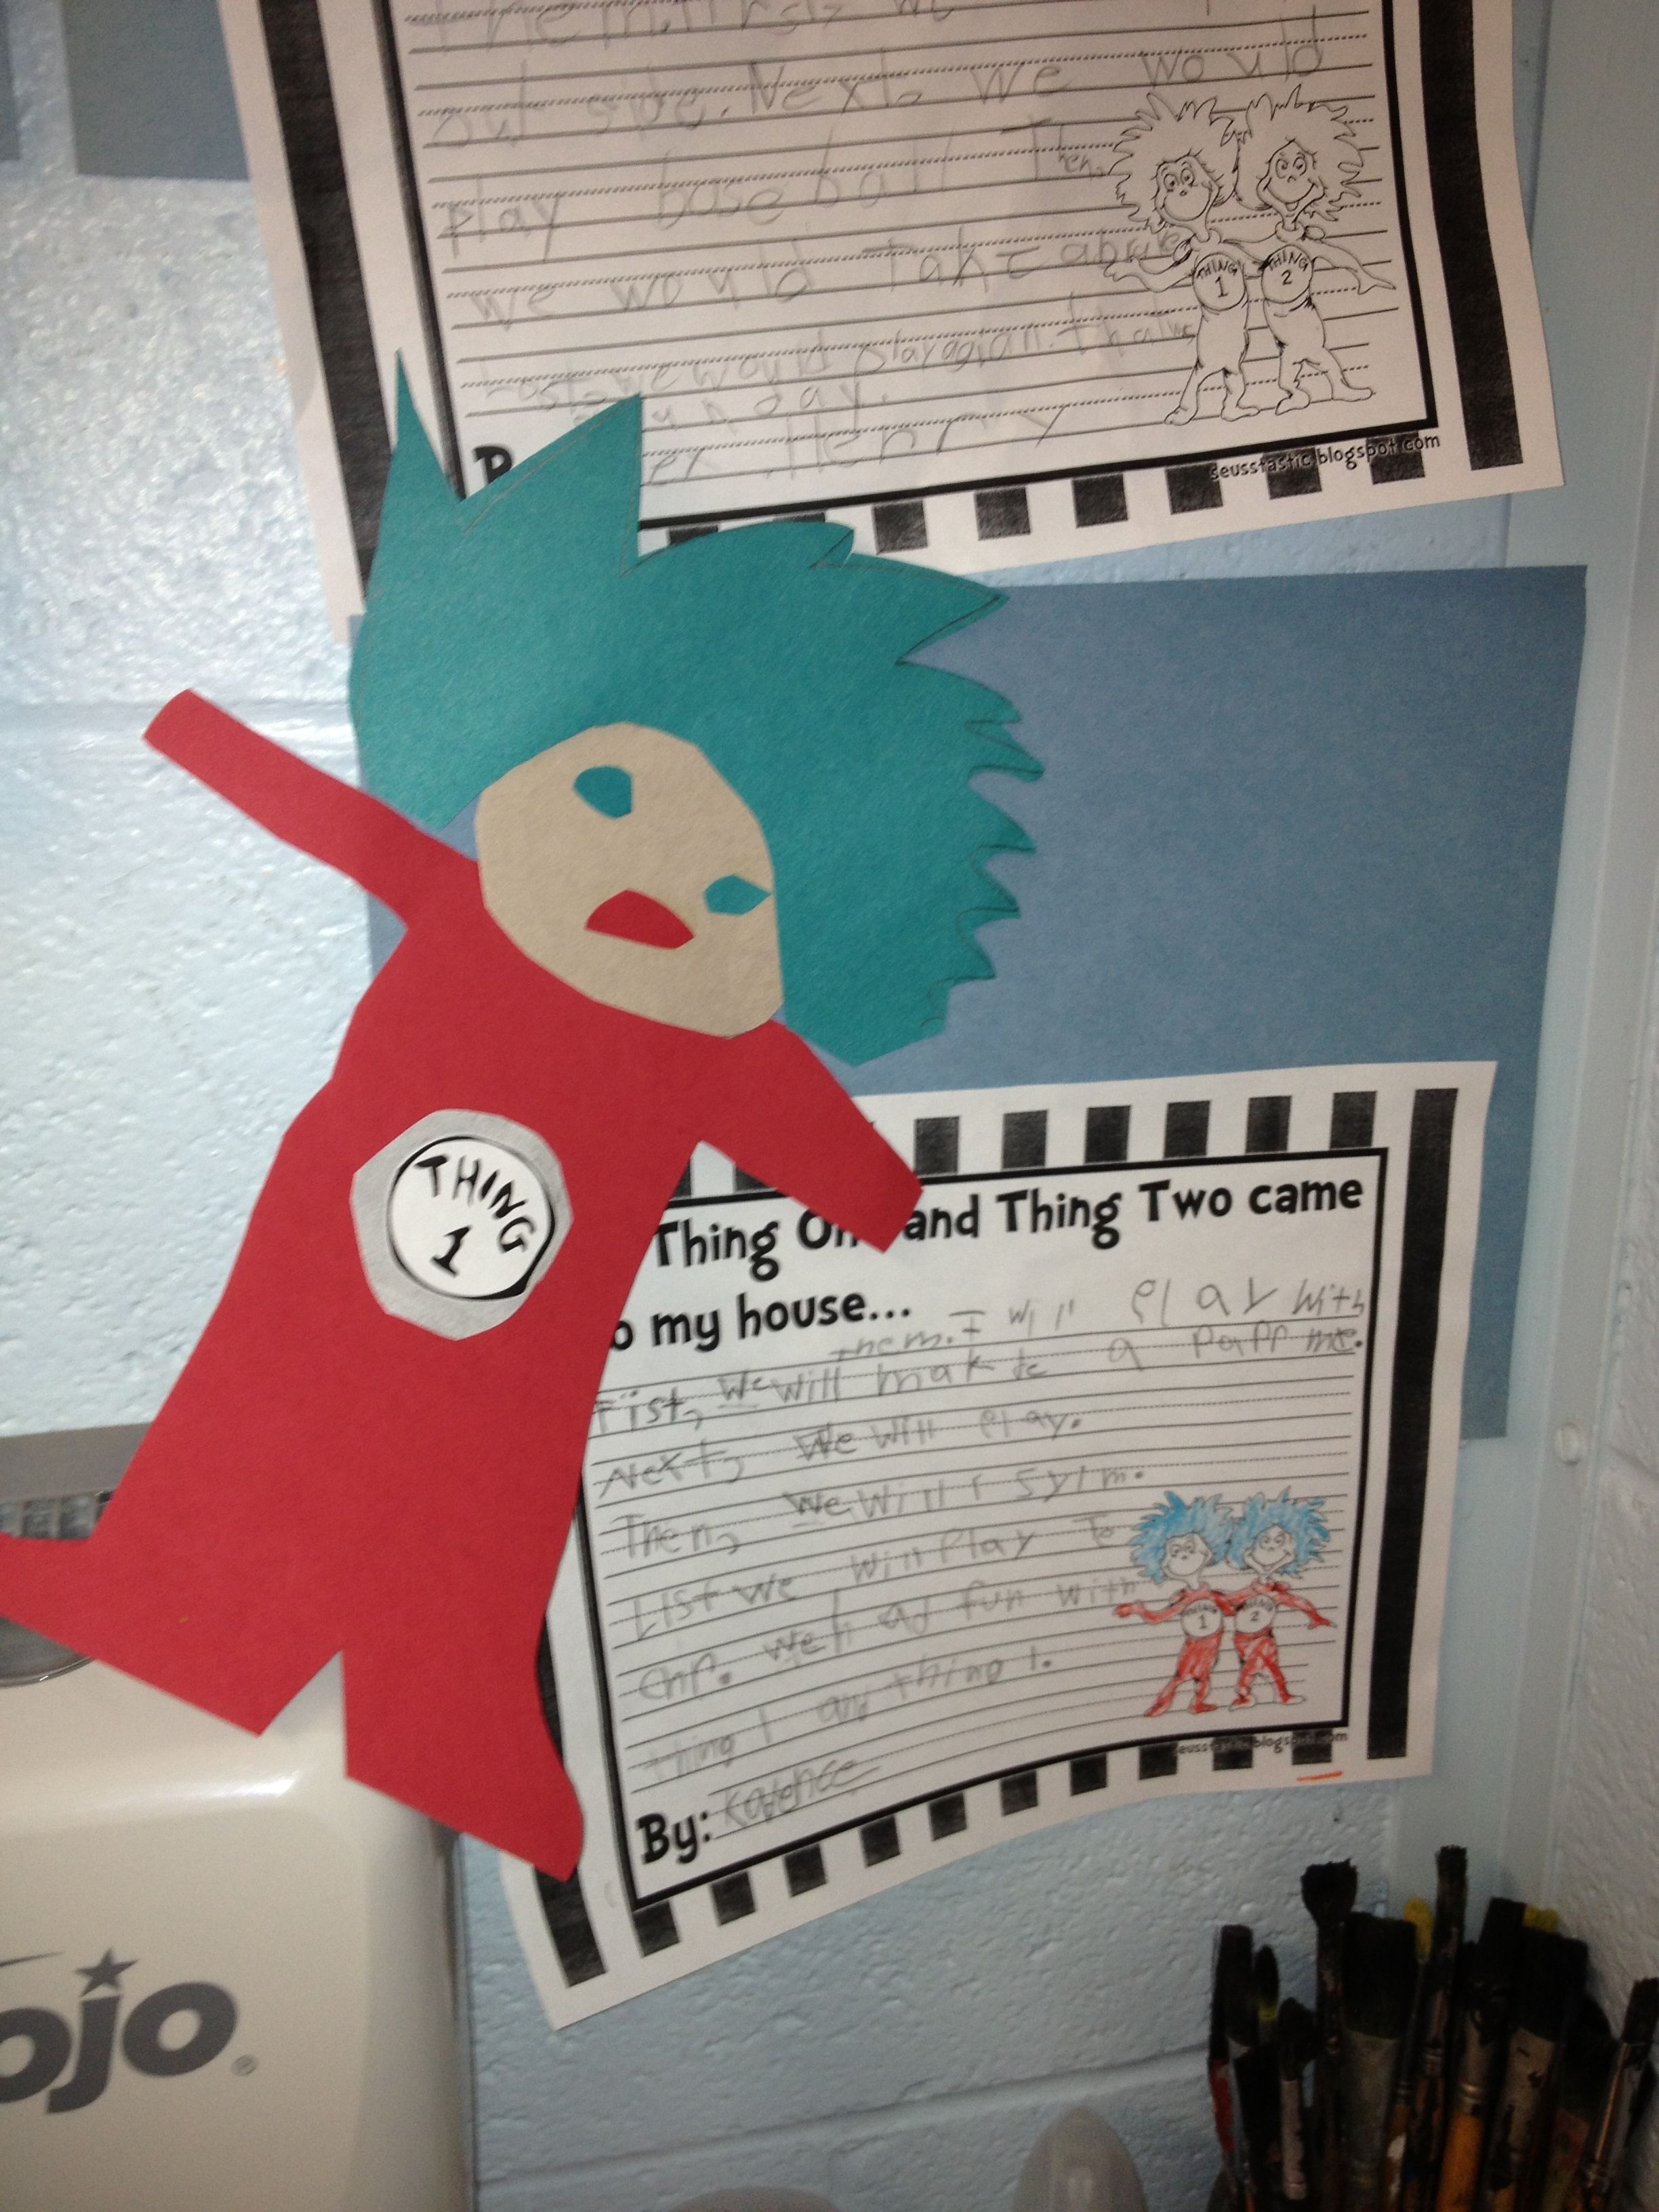 If thing 1 or thing 2 came to your house....